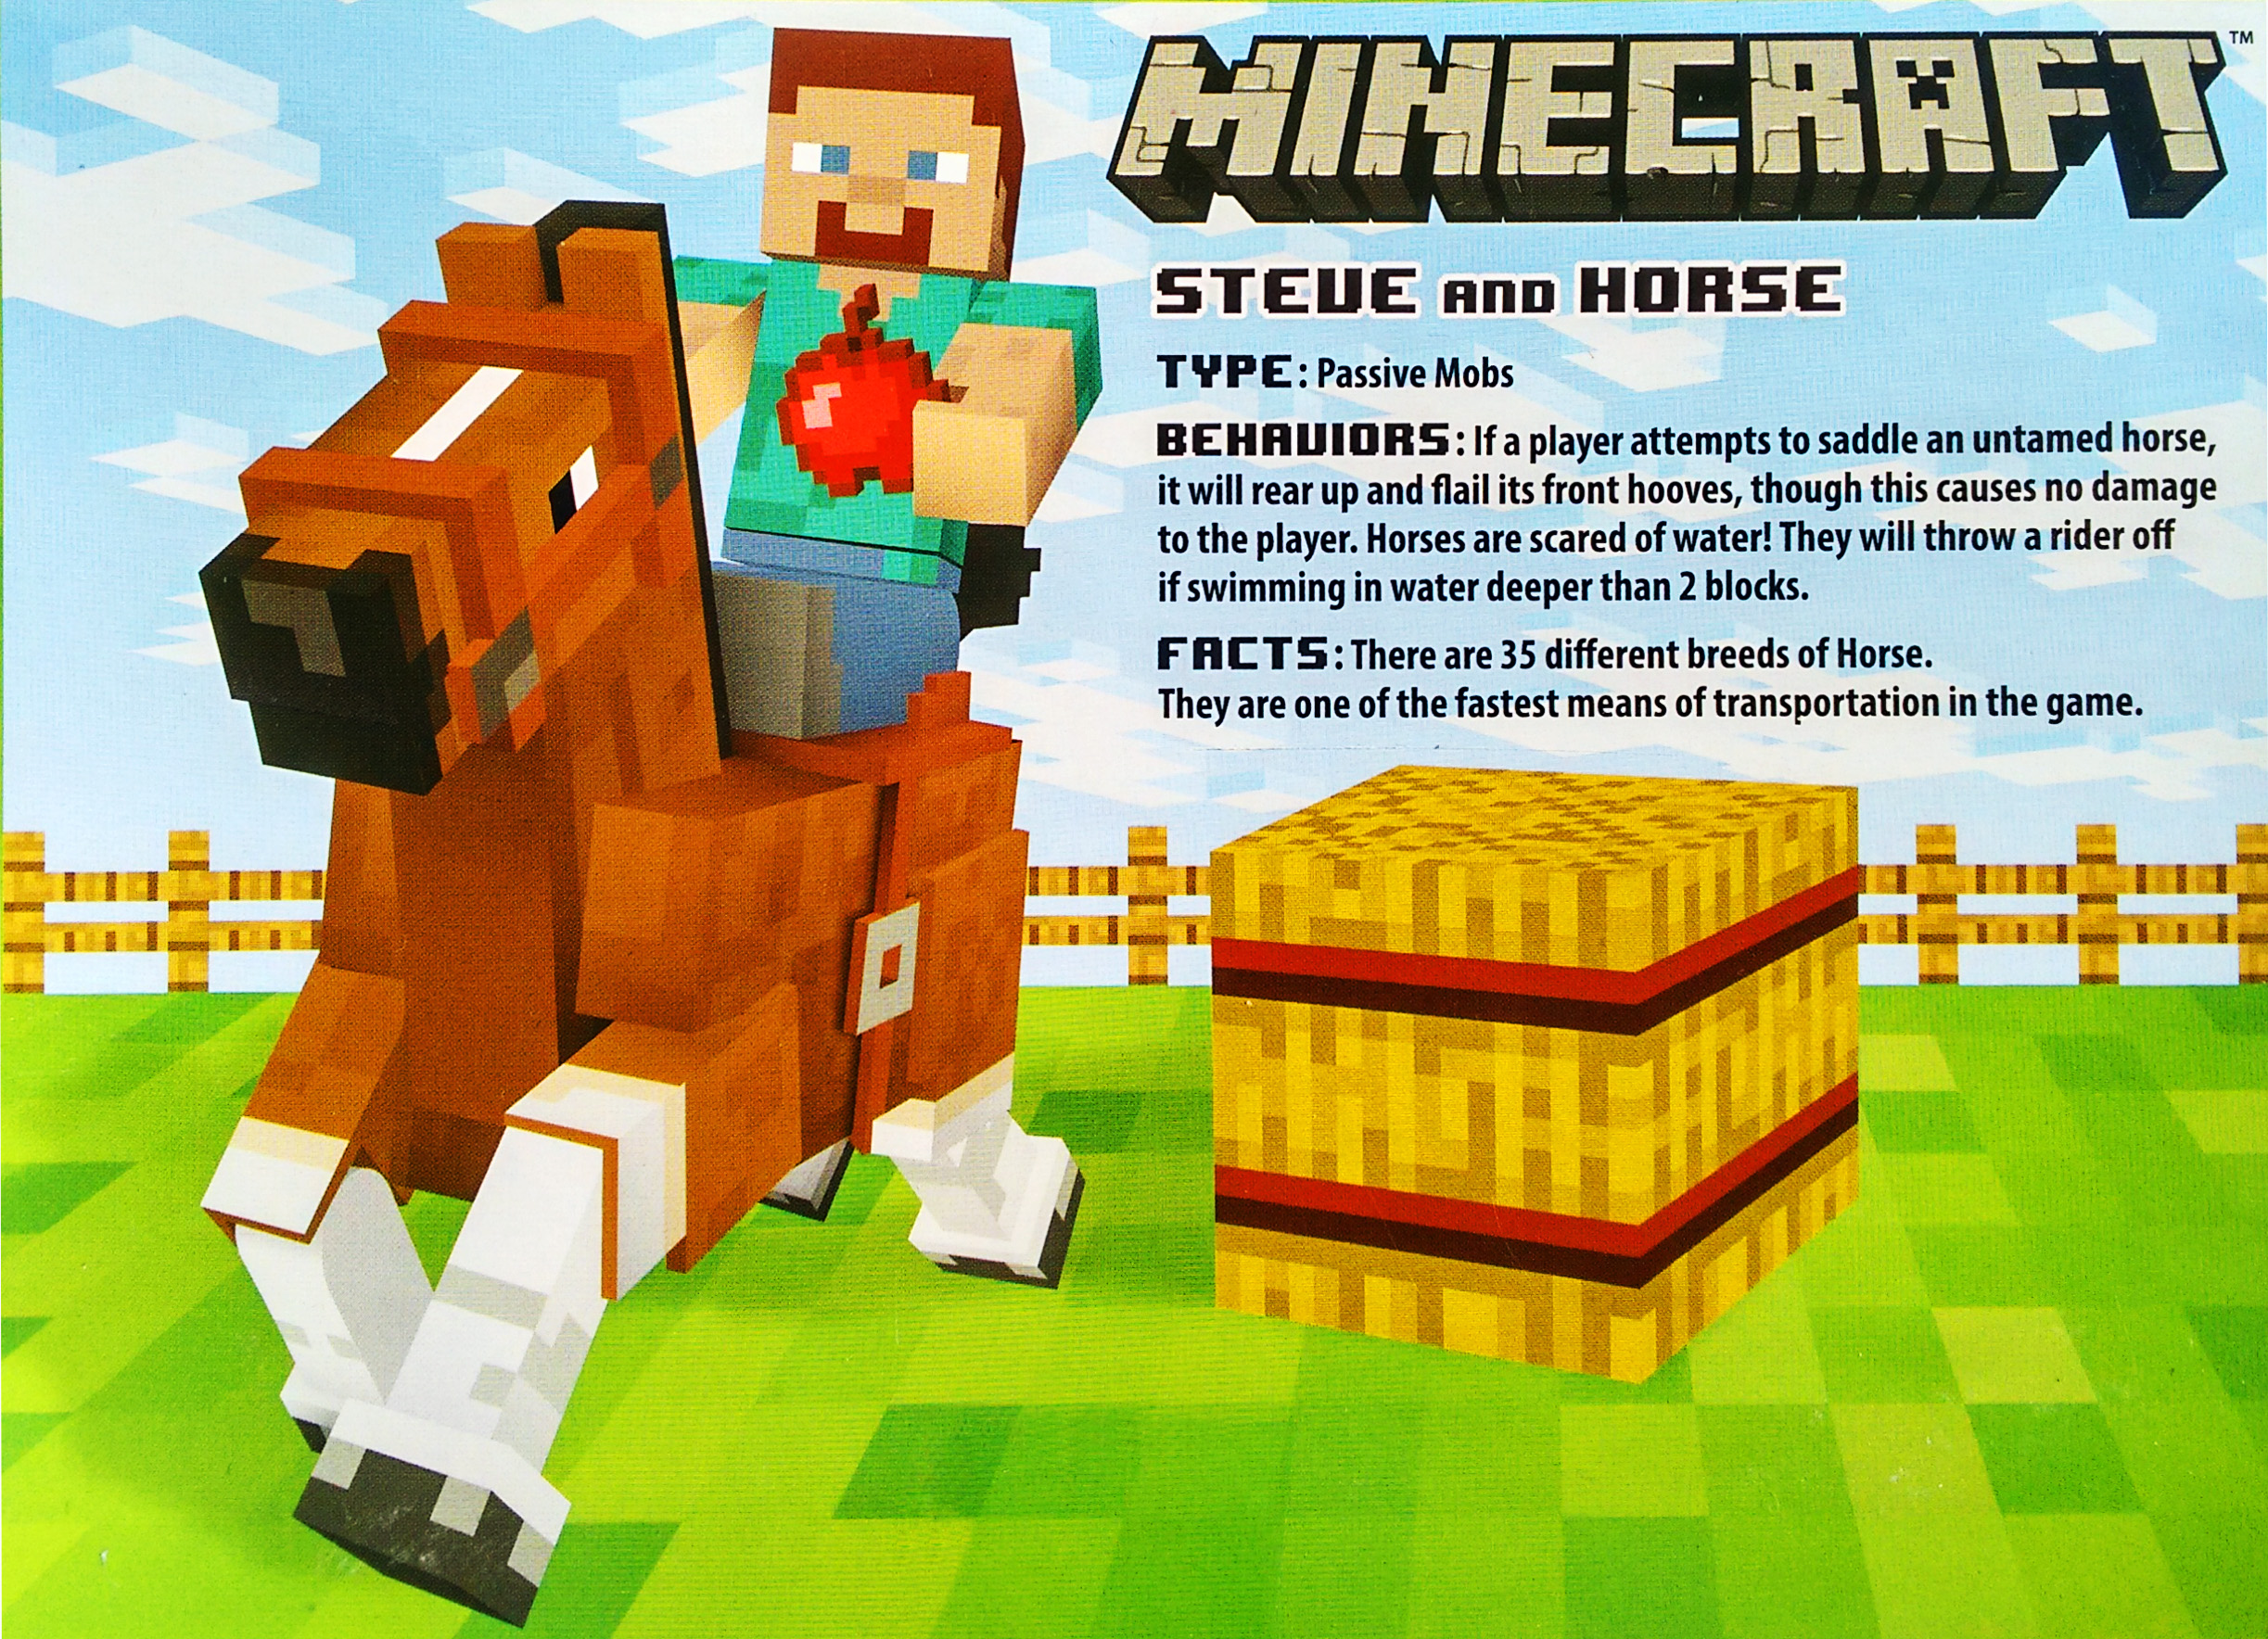 Steve_with_Chestnut_Horse